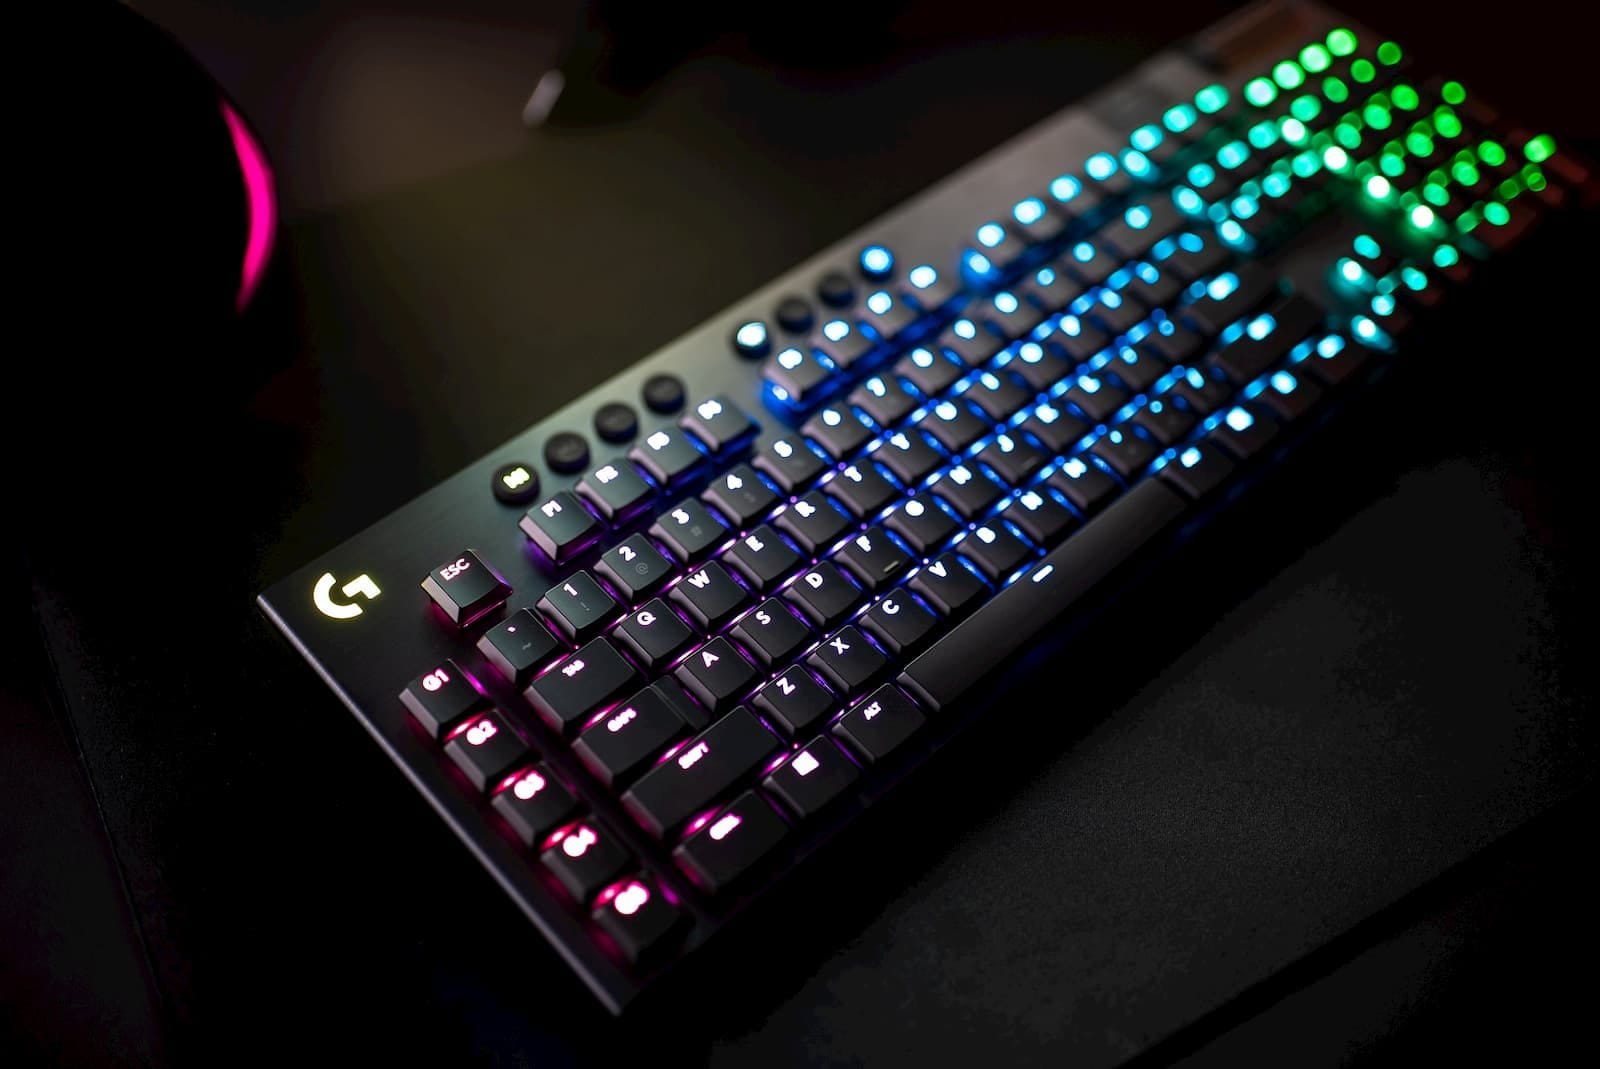 Logitech's new mechanical keyboards are 'more comfortable' to type on